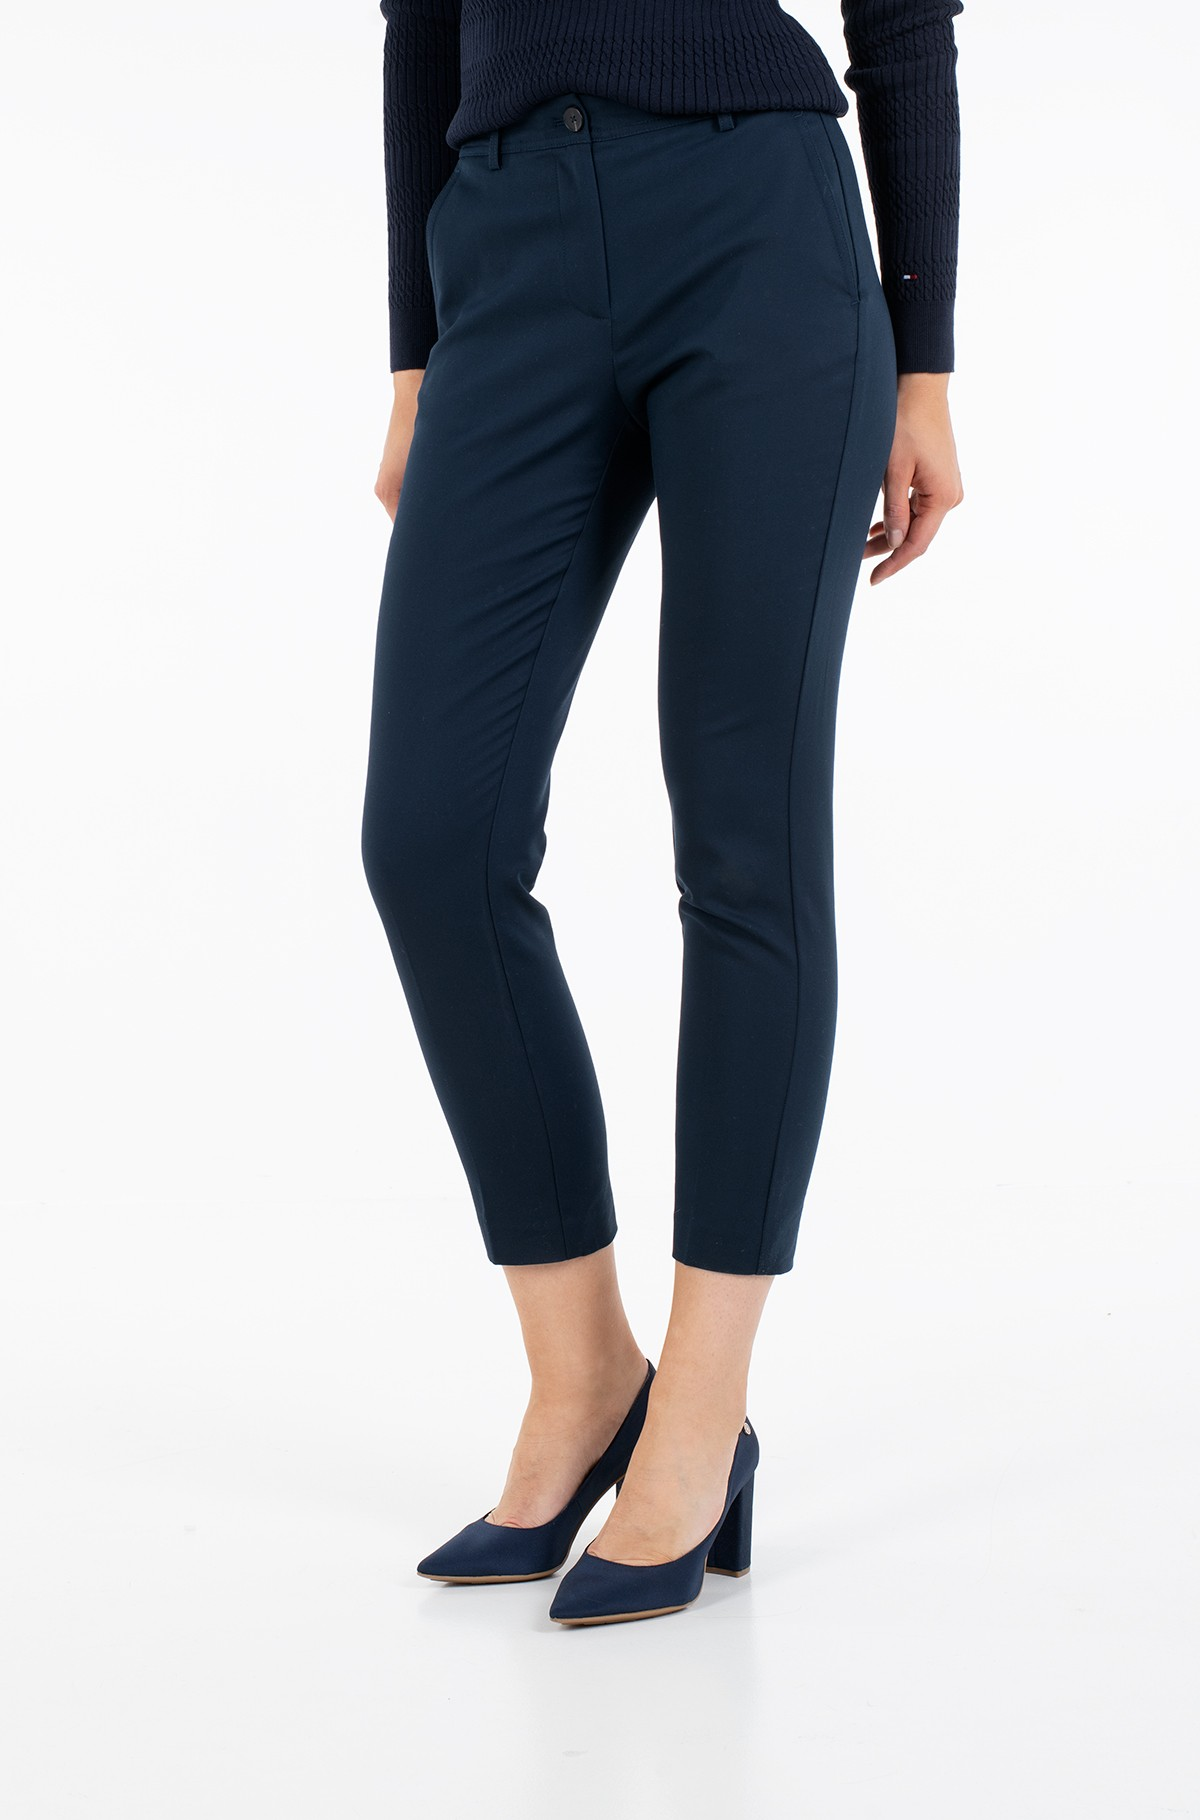 Kelnės DESTINY T5 ANKLE PANT-full-1